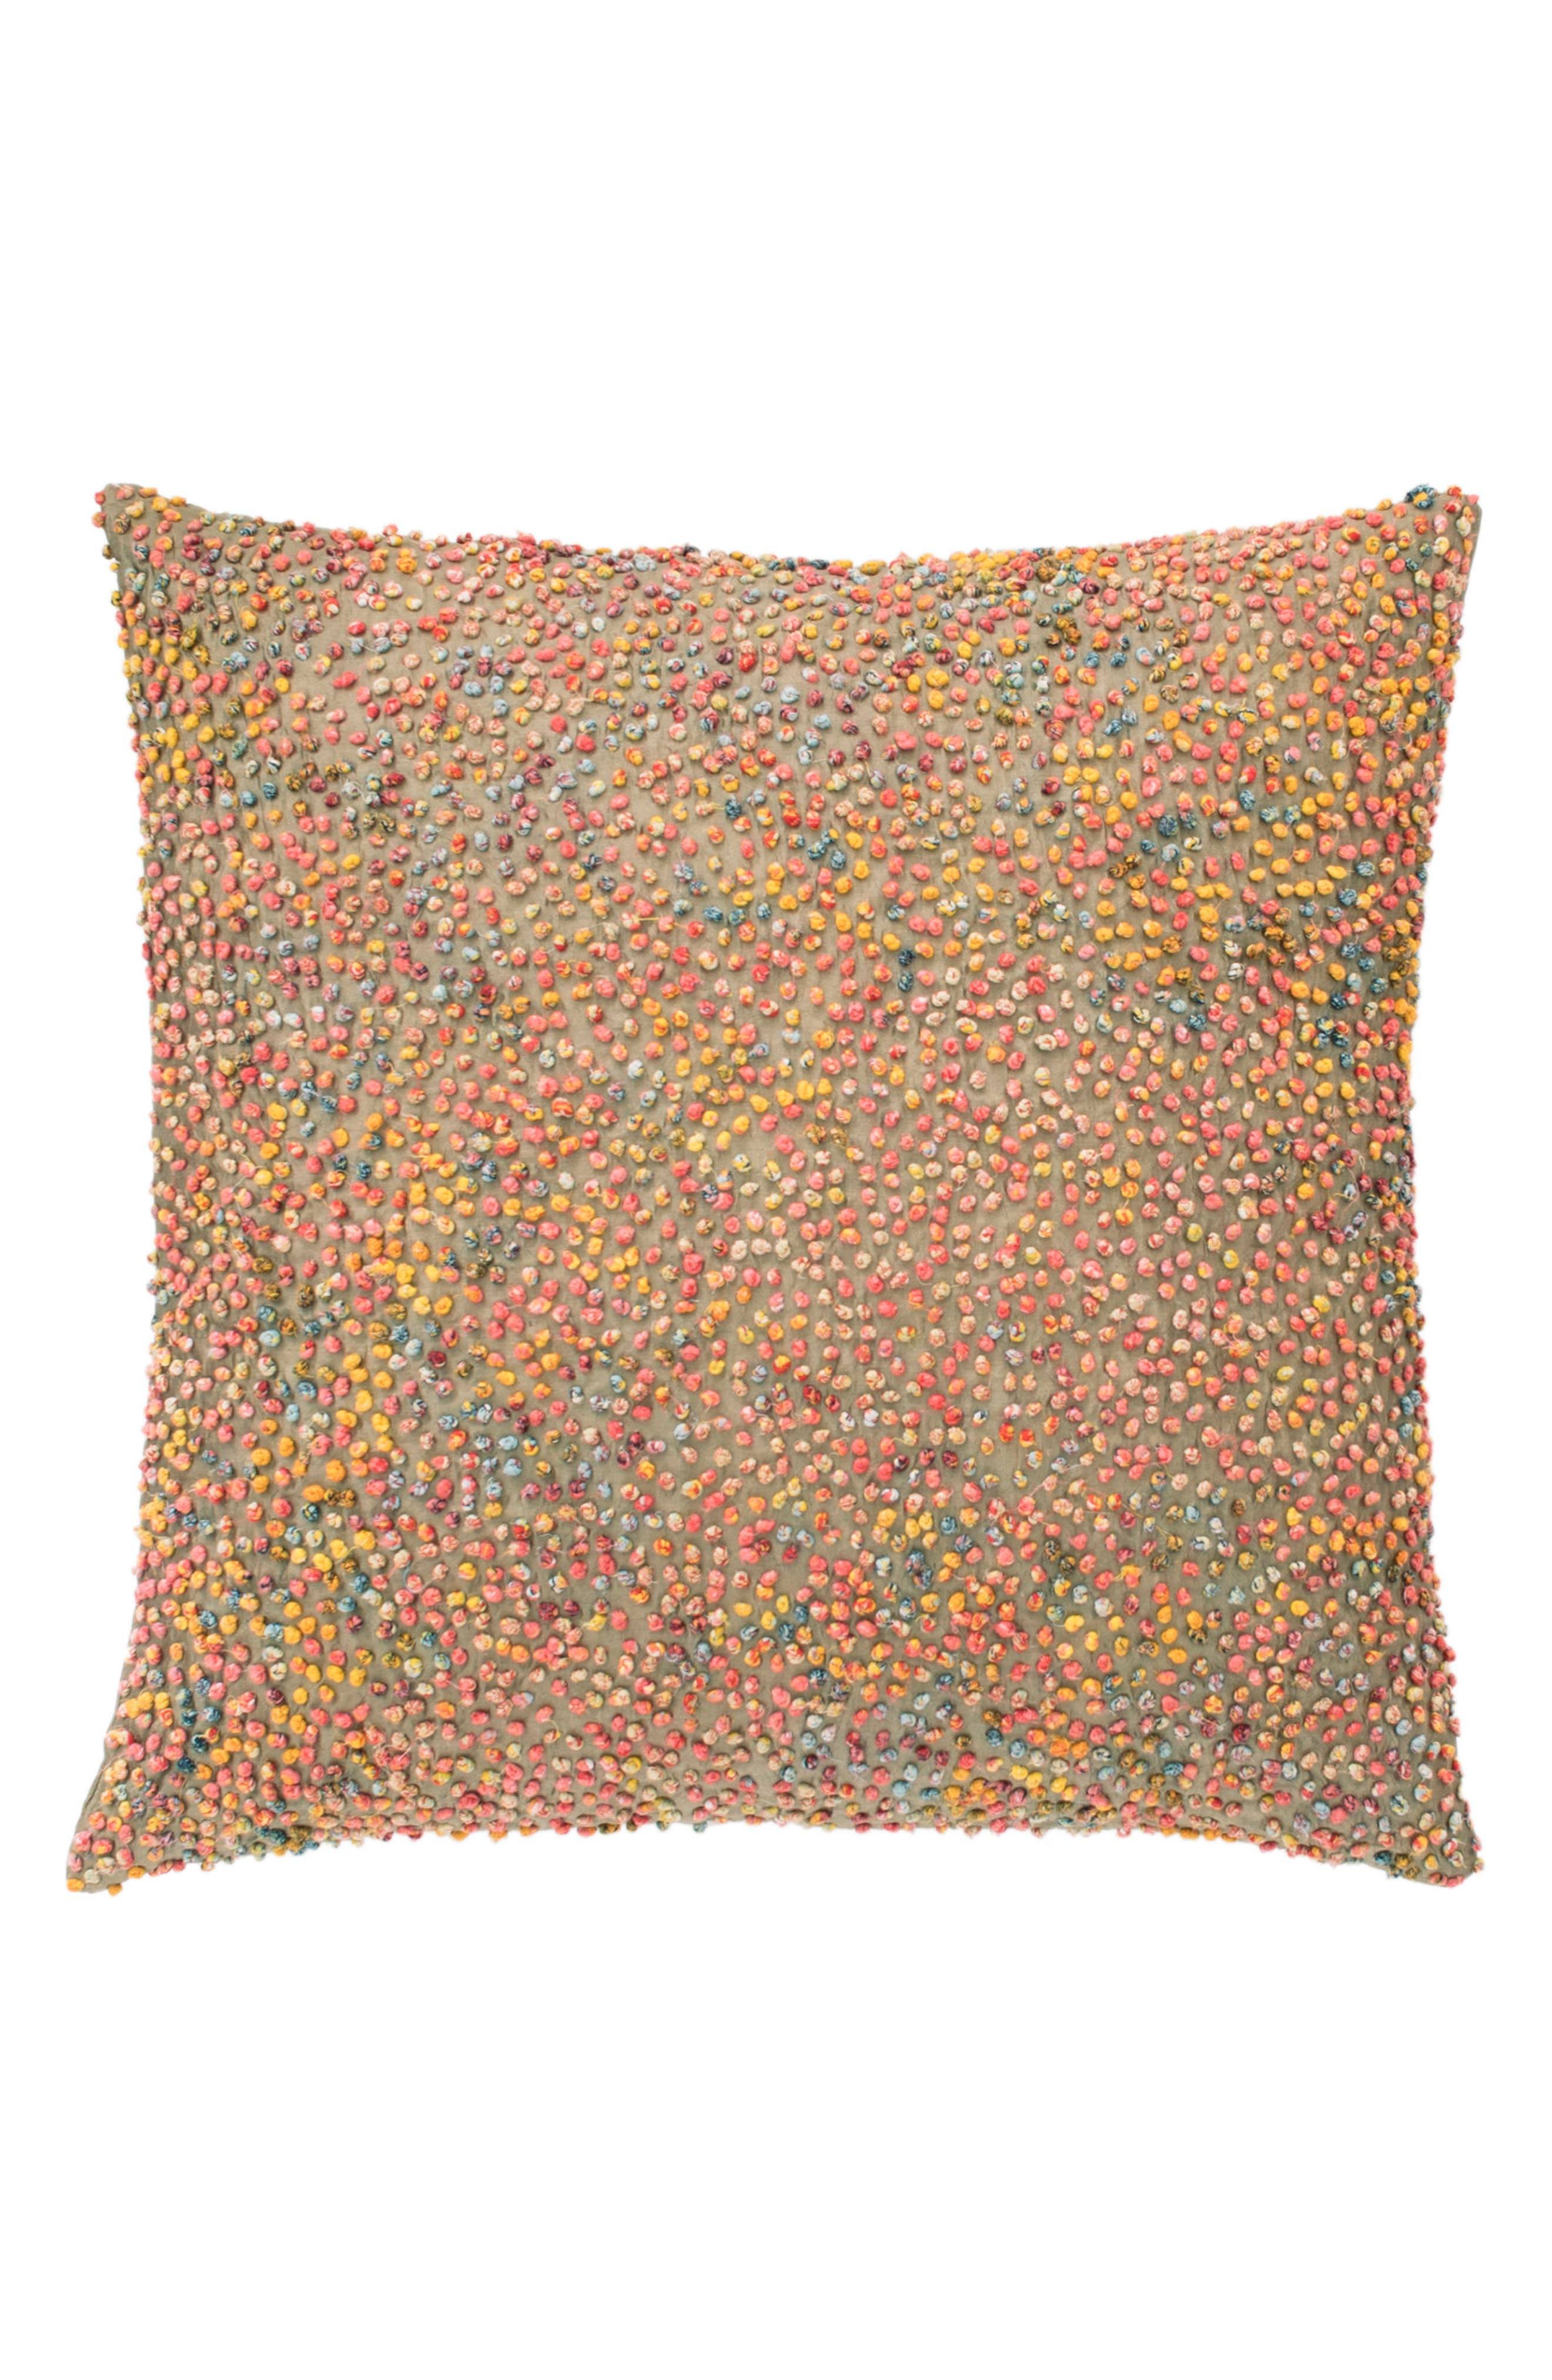 Cosmic Embroidered Accent Pillow,                             Main thumbnail 1, color,                             Pink